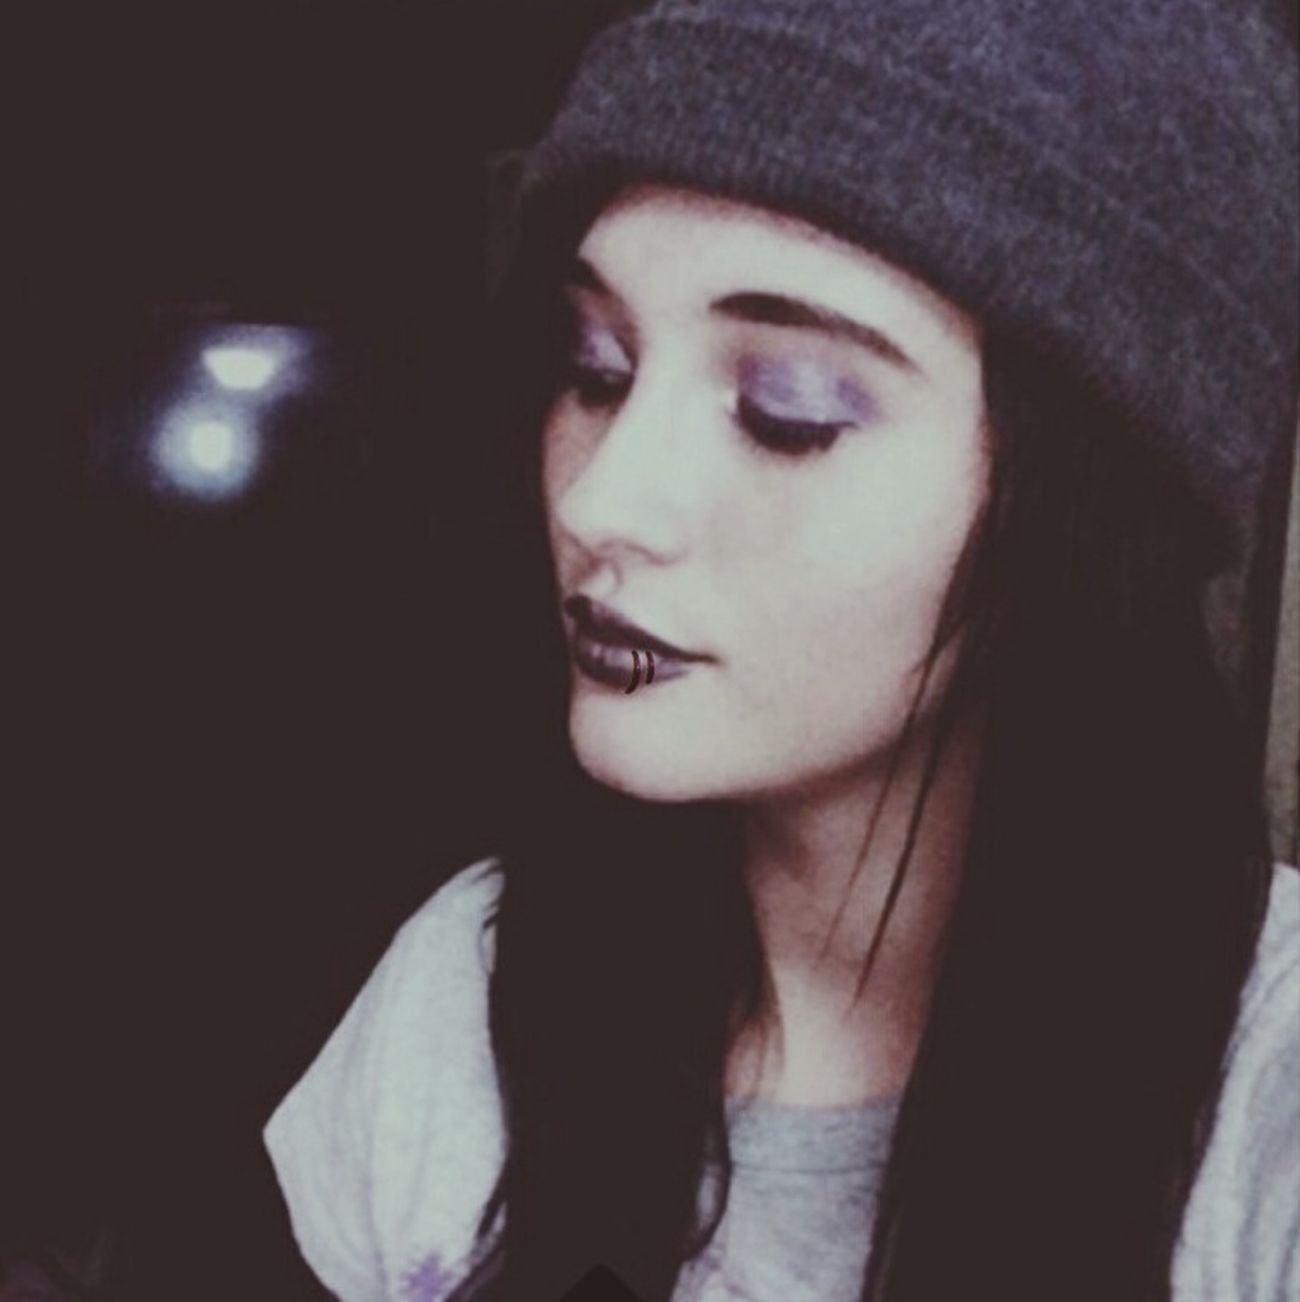 Getting my lip pierced soon, this is what I'd look like with it. I really like it. c: Model Music Single Cuddle